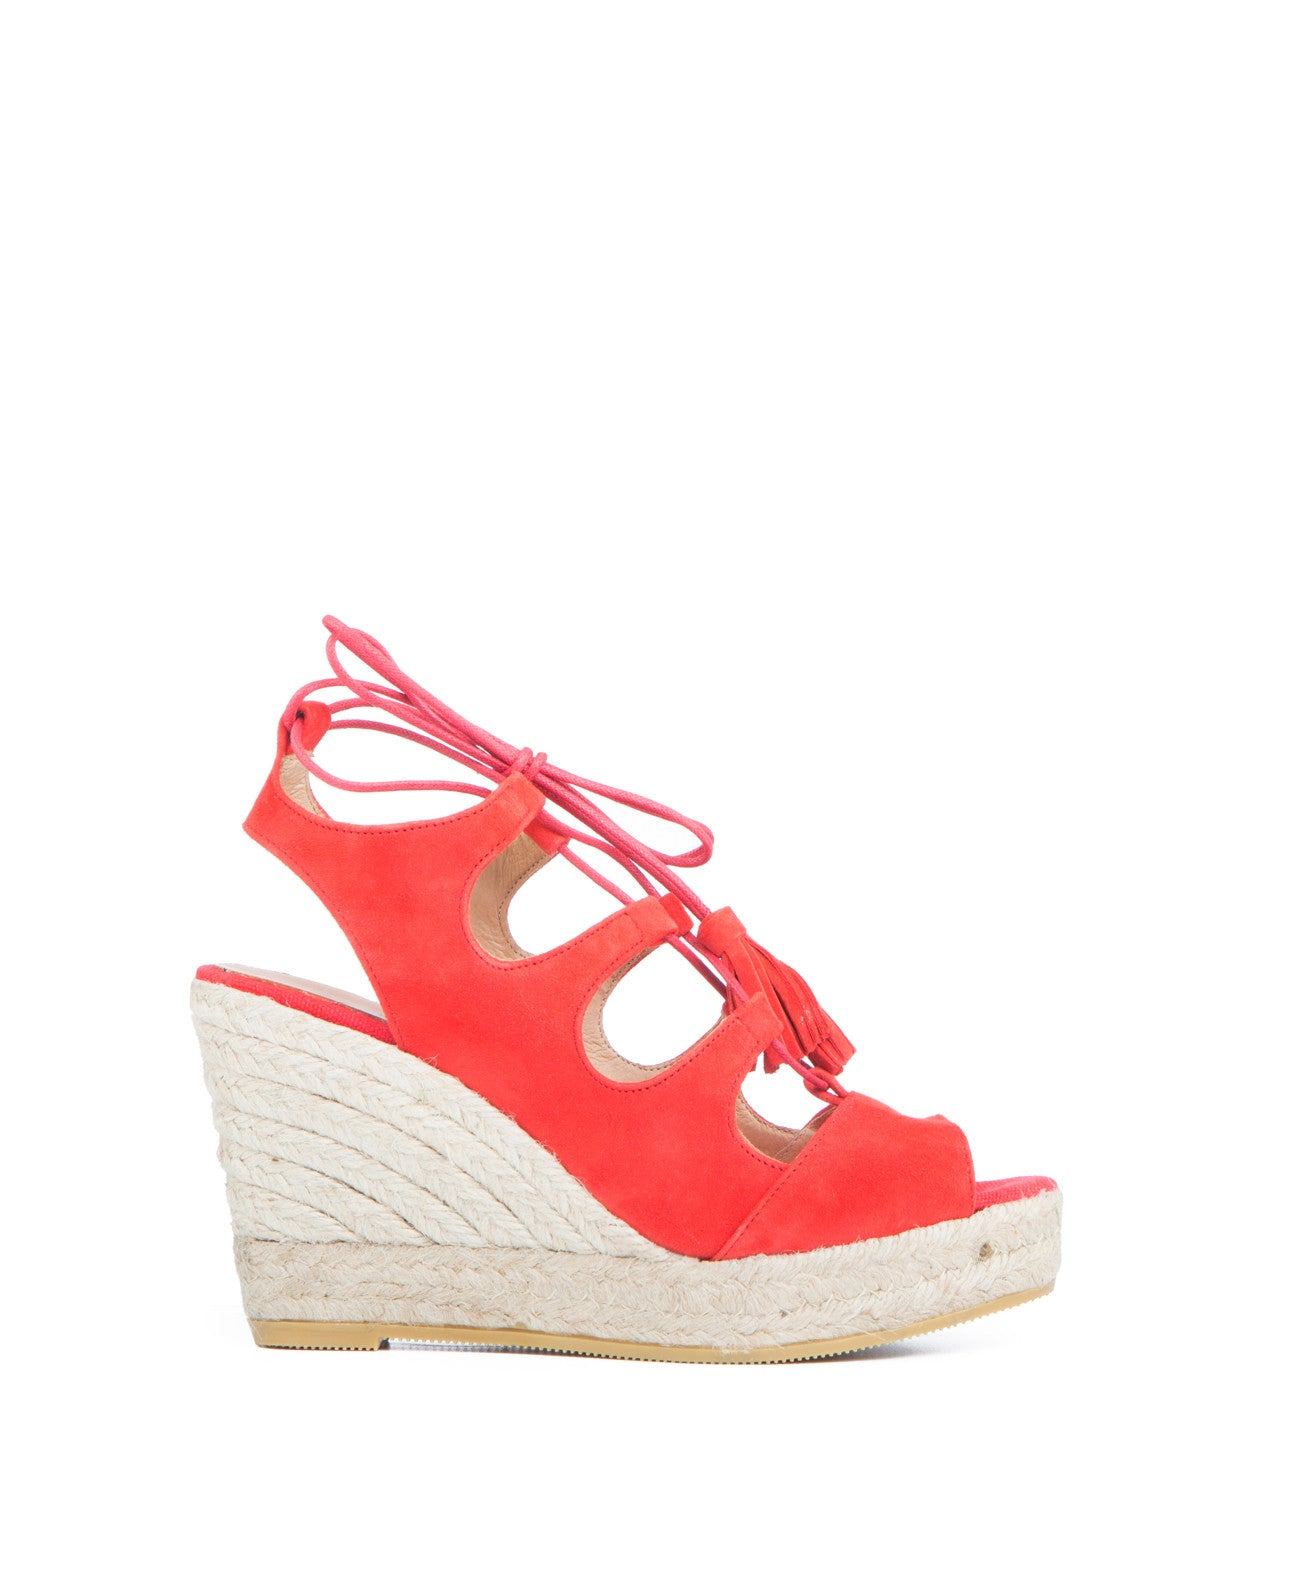 Jena Lace Up Espadrille Wedge - Koko & Palenki - 1